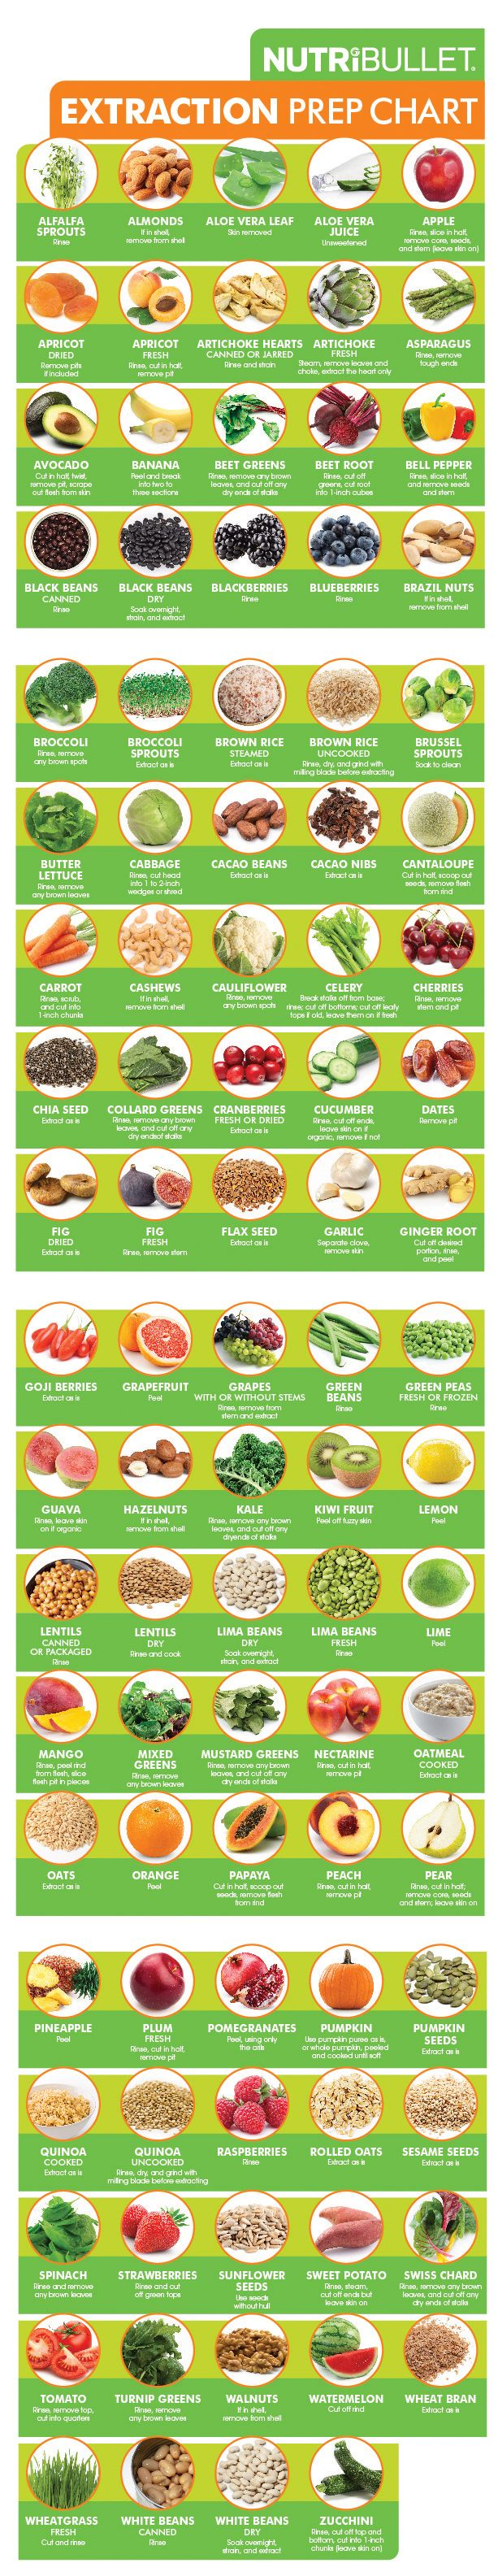 Extraction Prep Chart: Wondering which fruits and/or vegetables you should peel or de-seed before putting them in your NutriBullet? Worry no more - this chart is here to help!